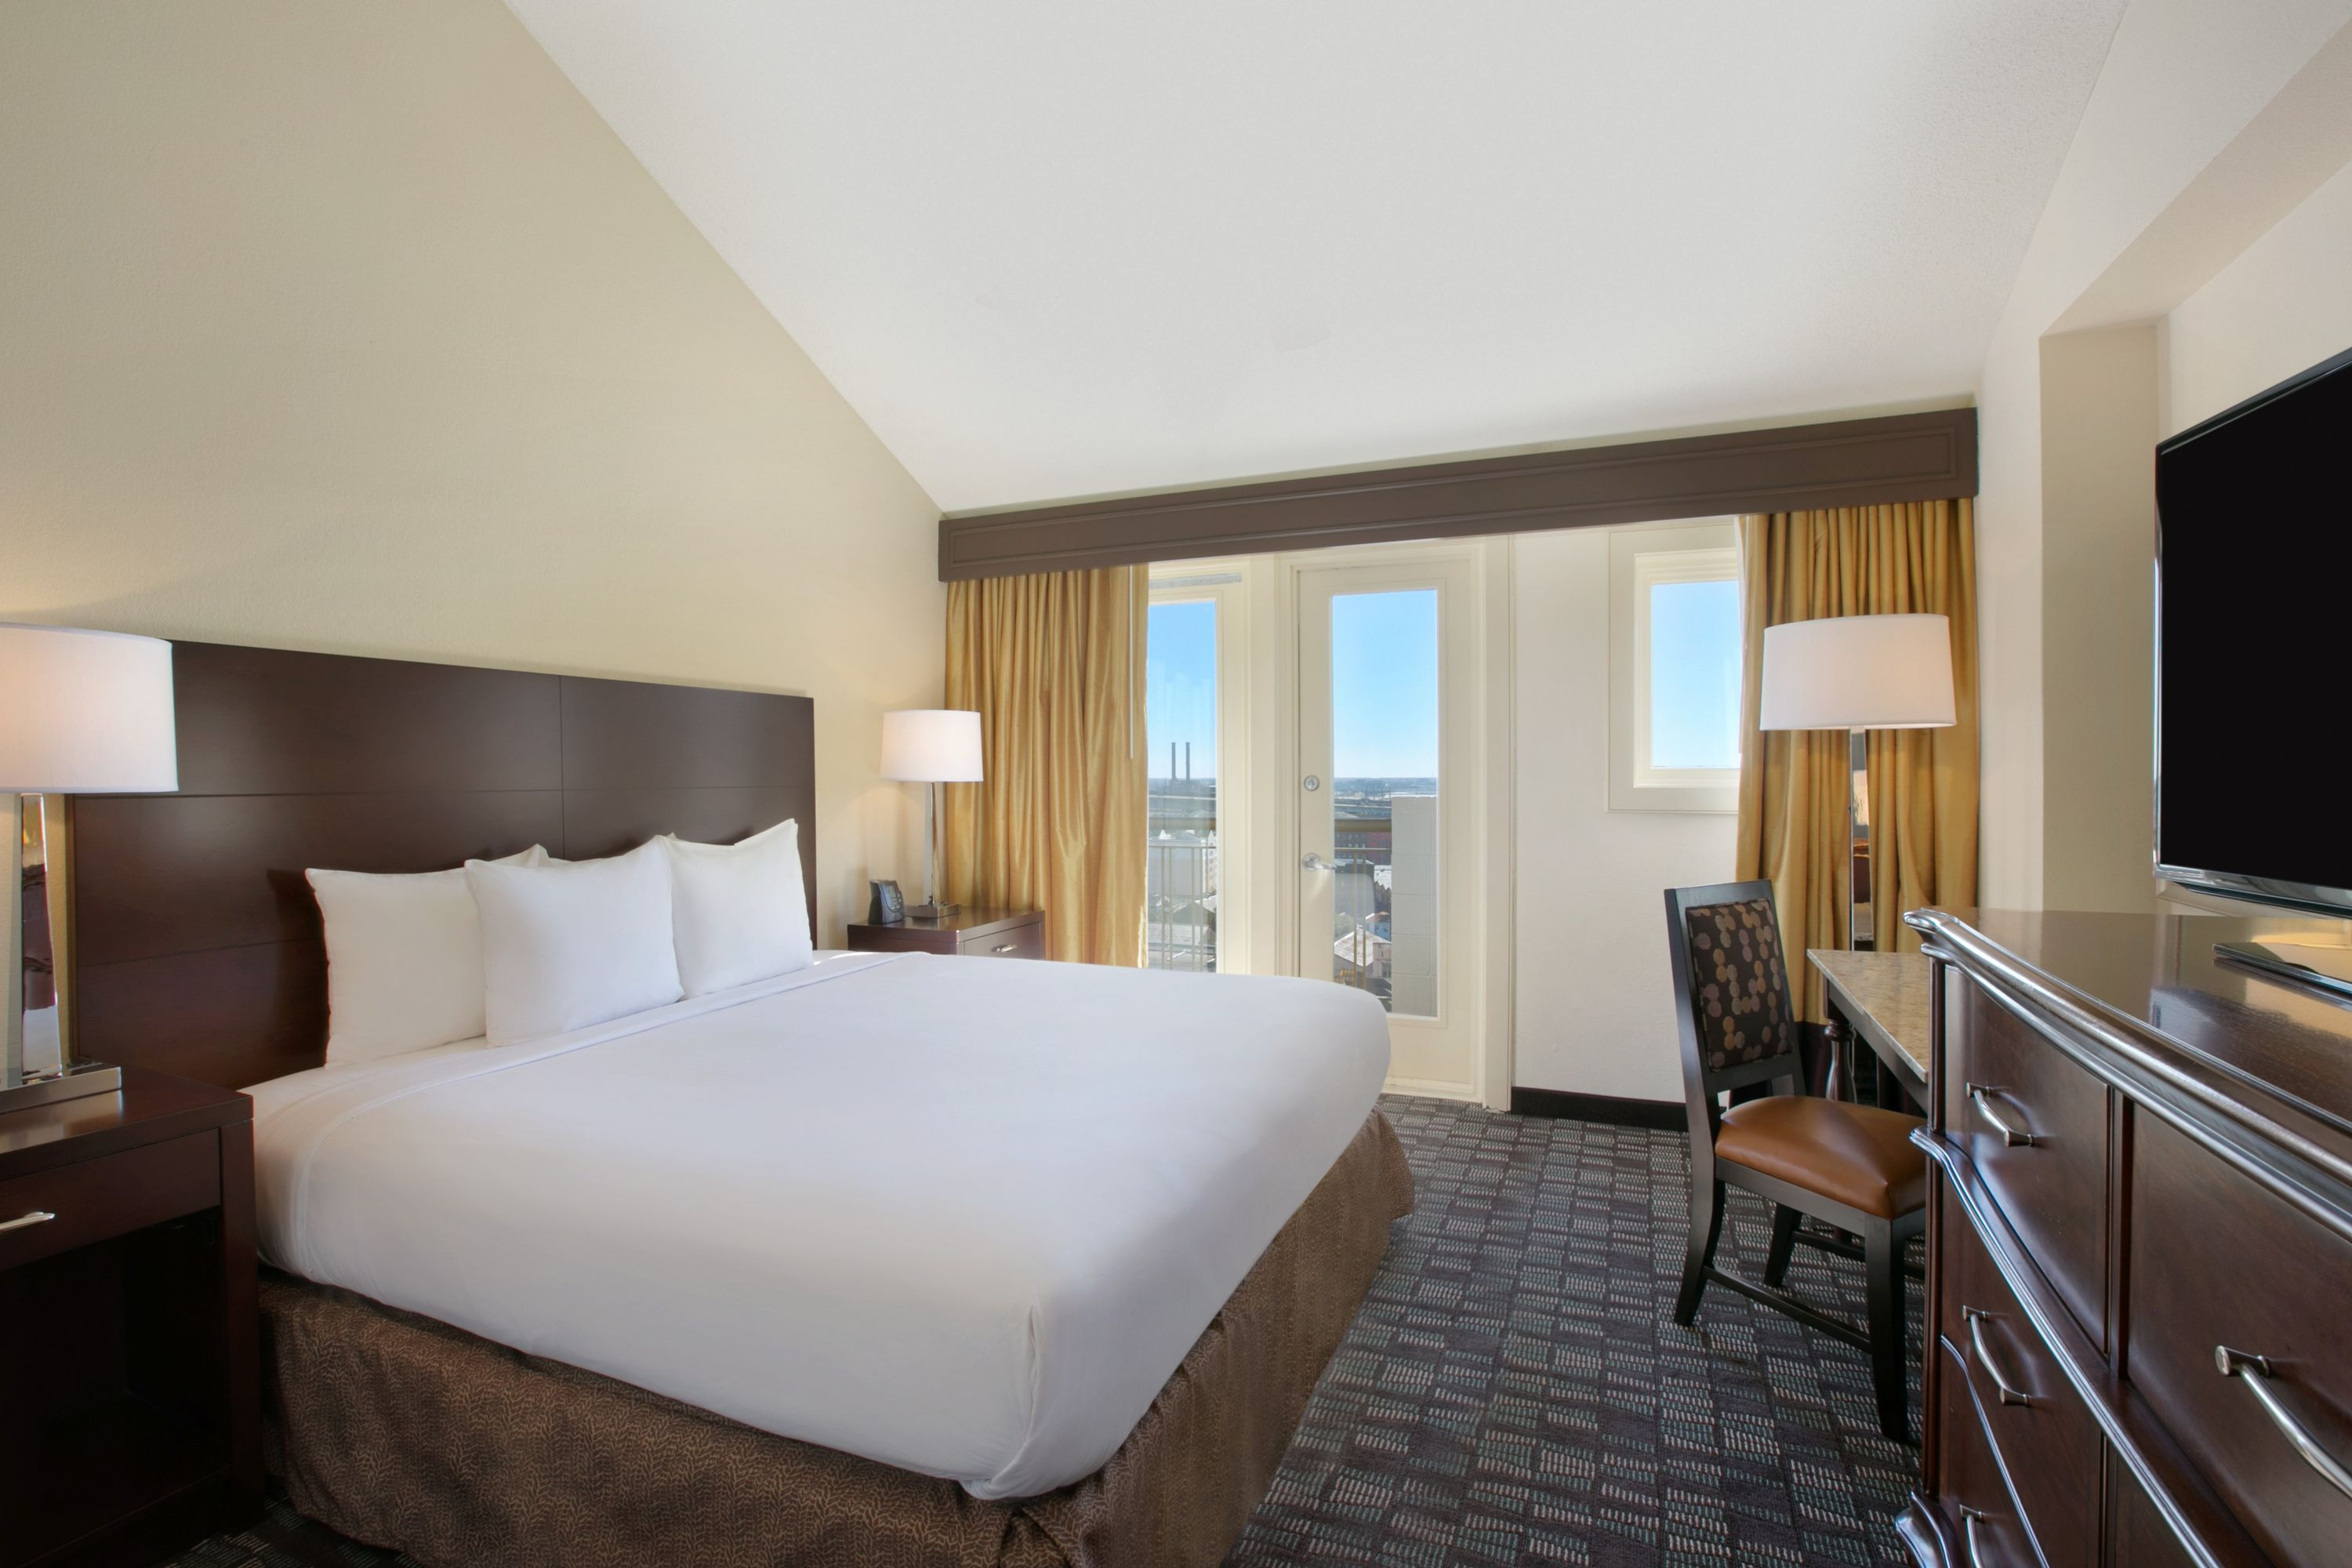 New Orleans Hotel Suites 2 Bedroom Watch More Like Embassy Suites New Orleans